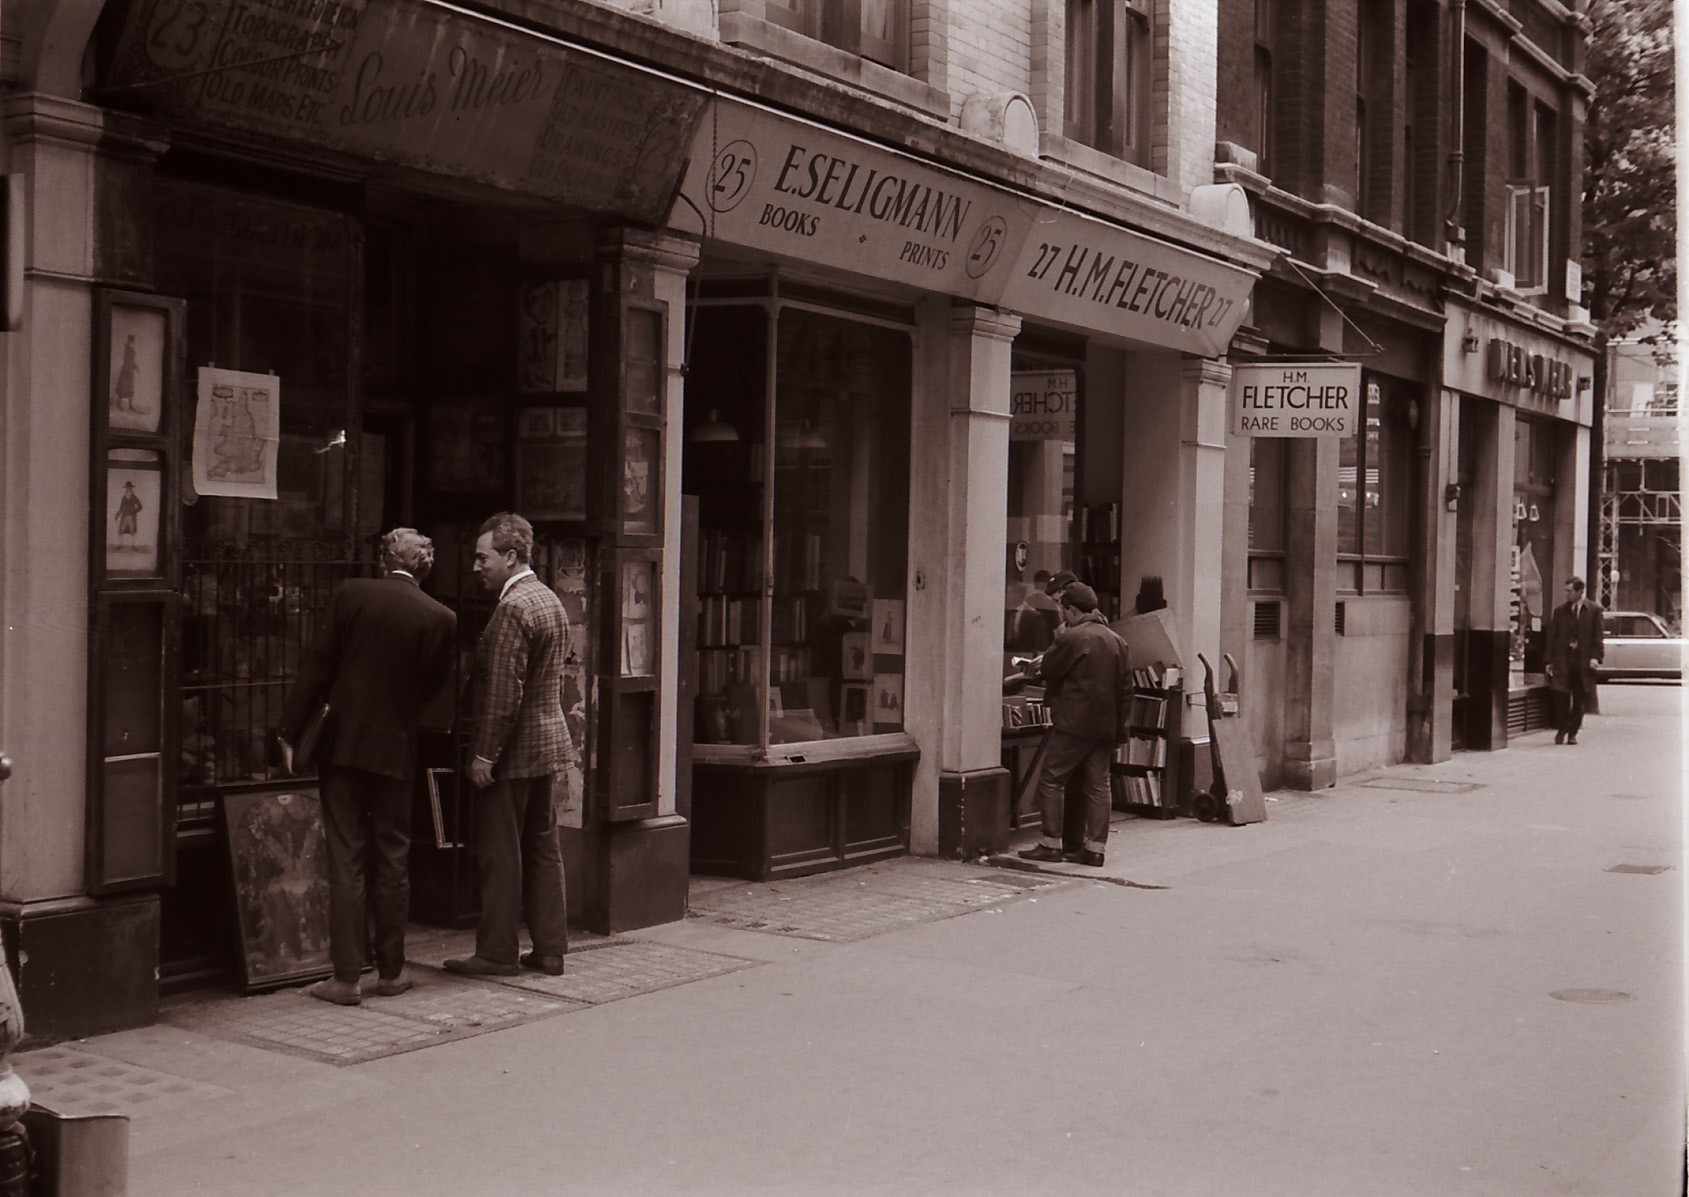 Photos of Cecil Court taken in 1966 by Trevor Vincent-Edwards